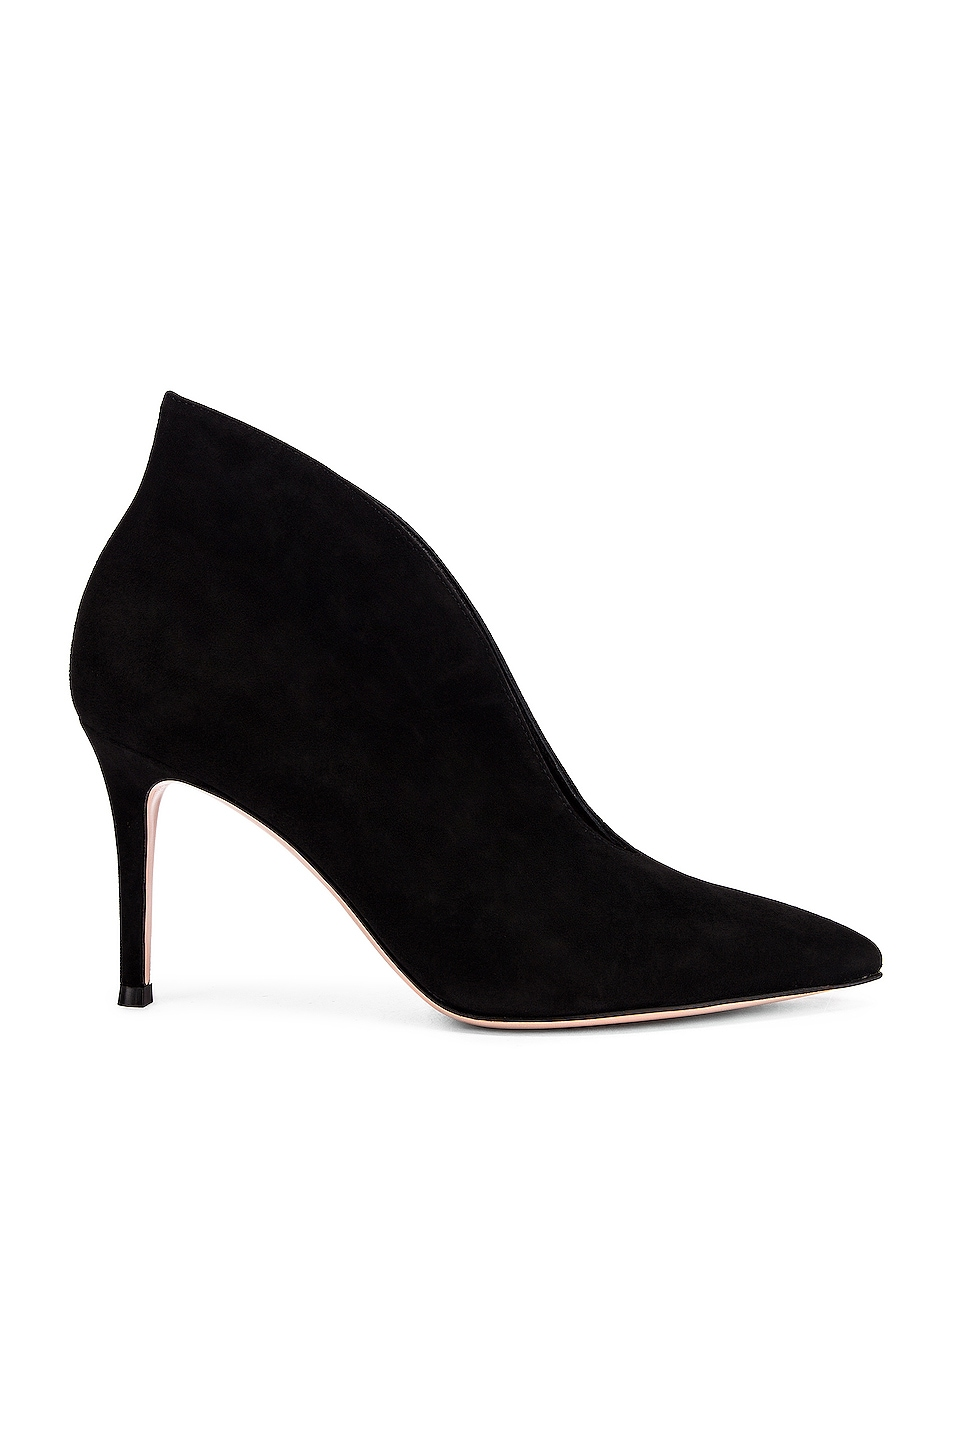 Image 1 of Gianvito Rossi Open Bootie Heels in Black